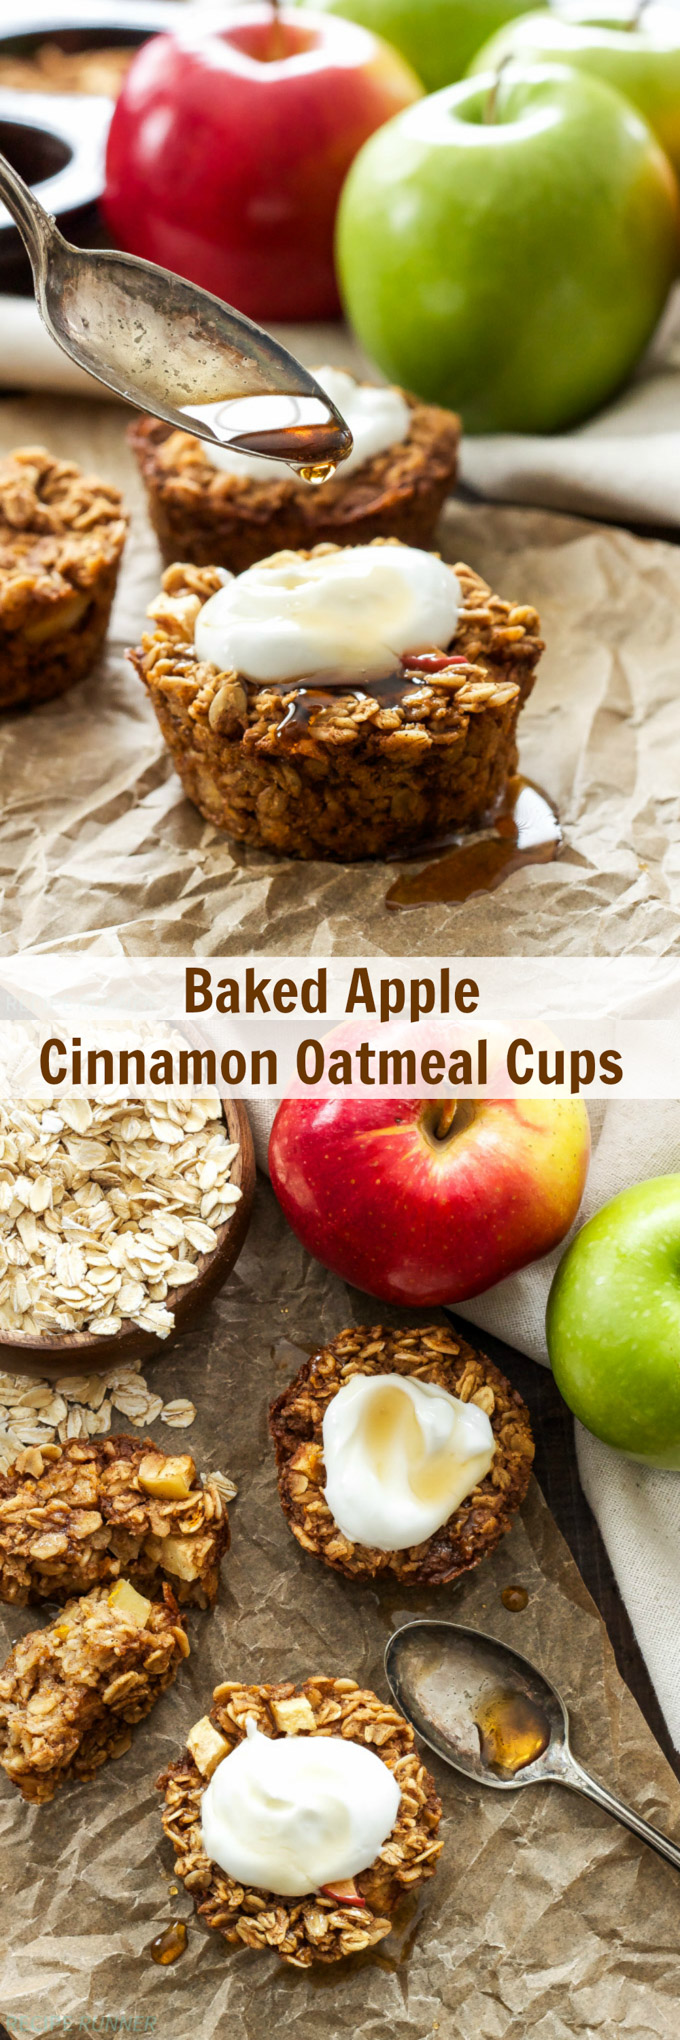 Baked Apple Cinnamon Oatmeal Cups | Both kid & adult friendly, these healthy, gluten-free Baked Apple Cinnamon Oatmeal Cups are a great grab-and-go breakfast or snack!